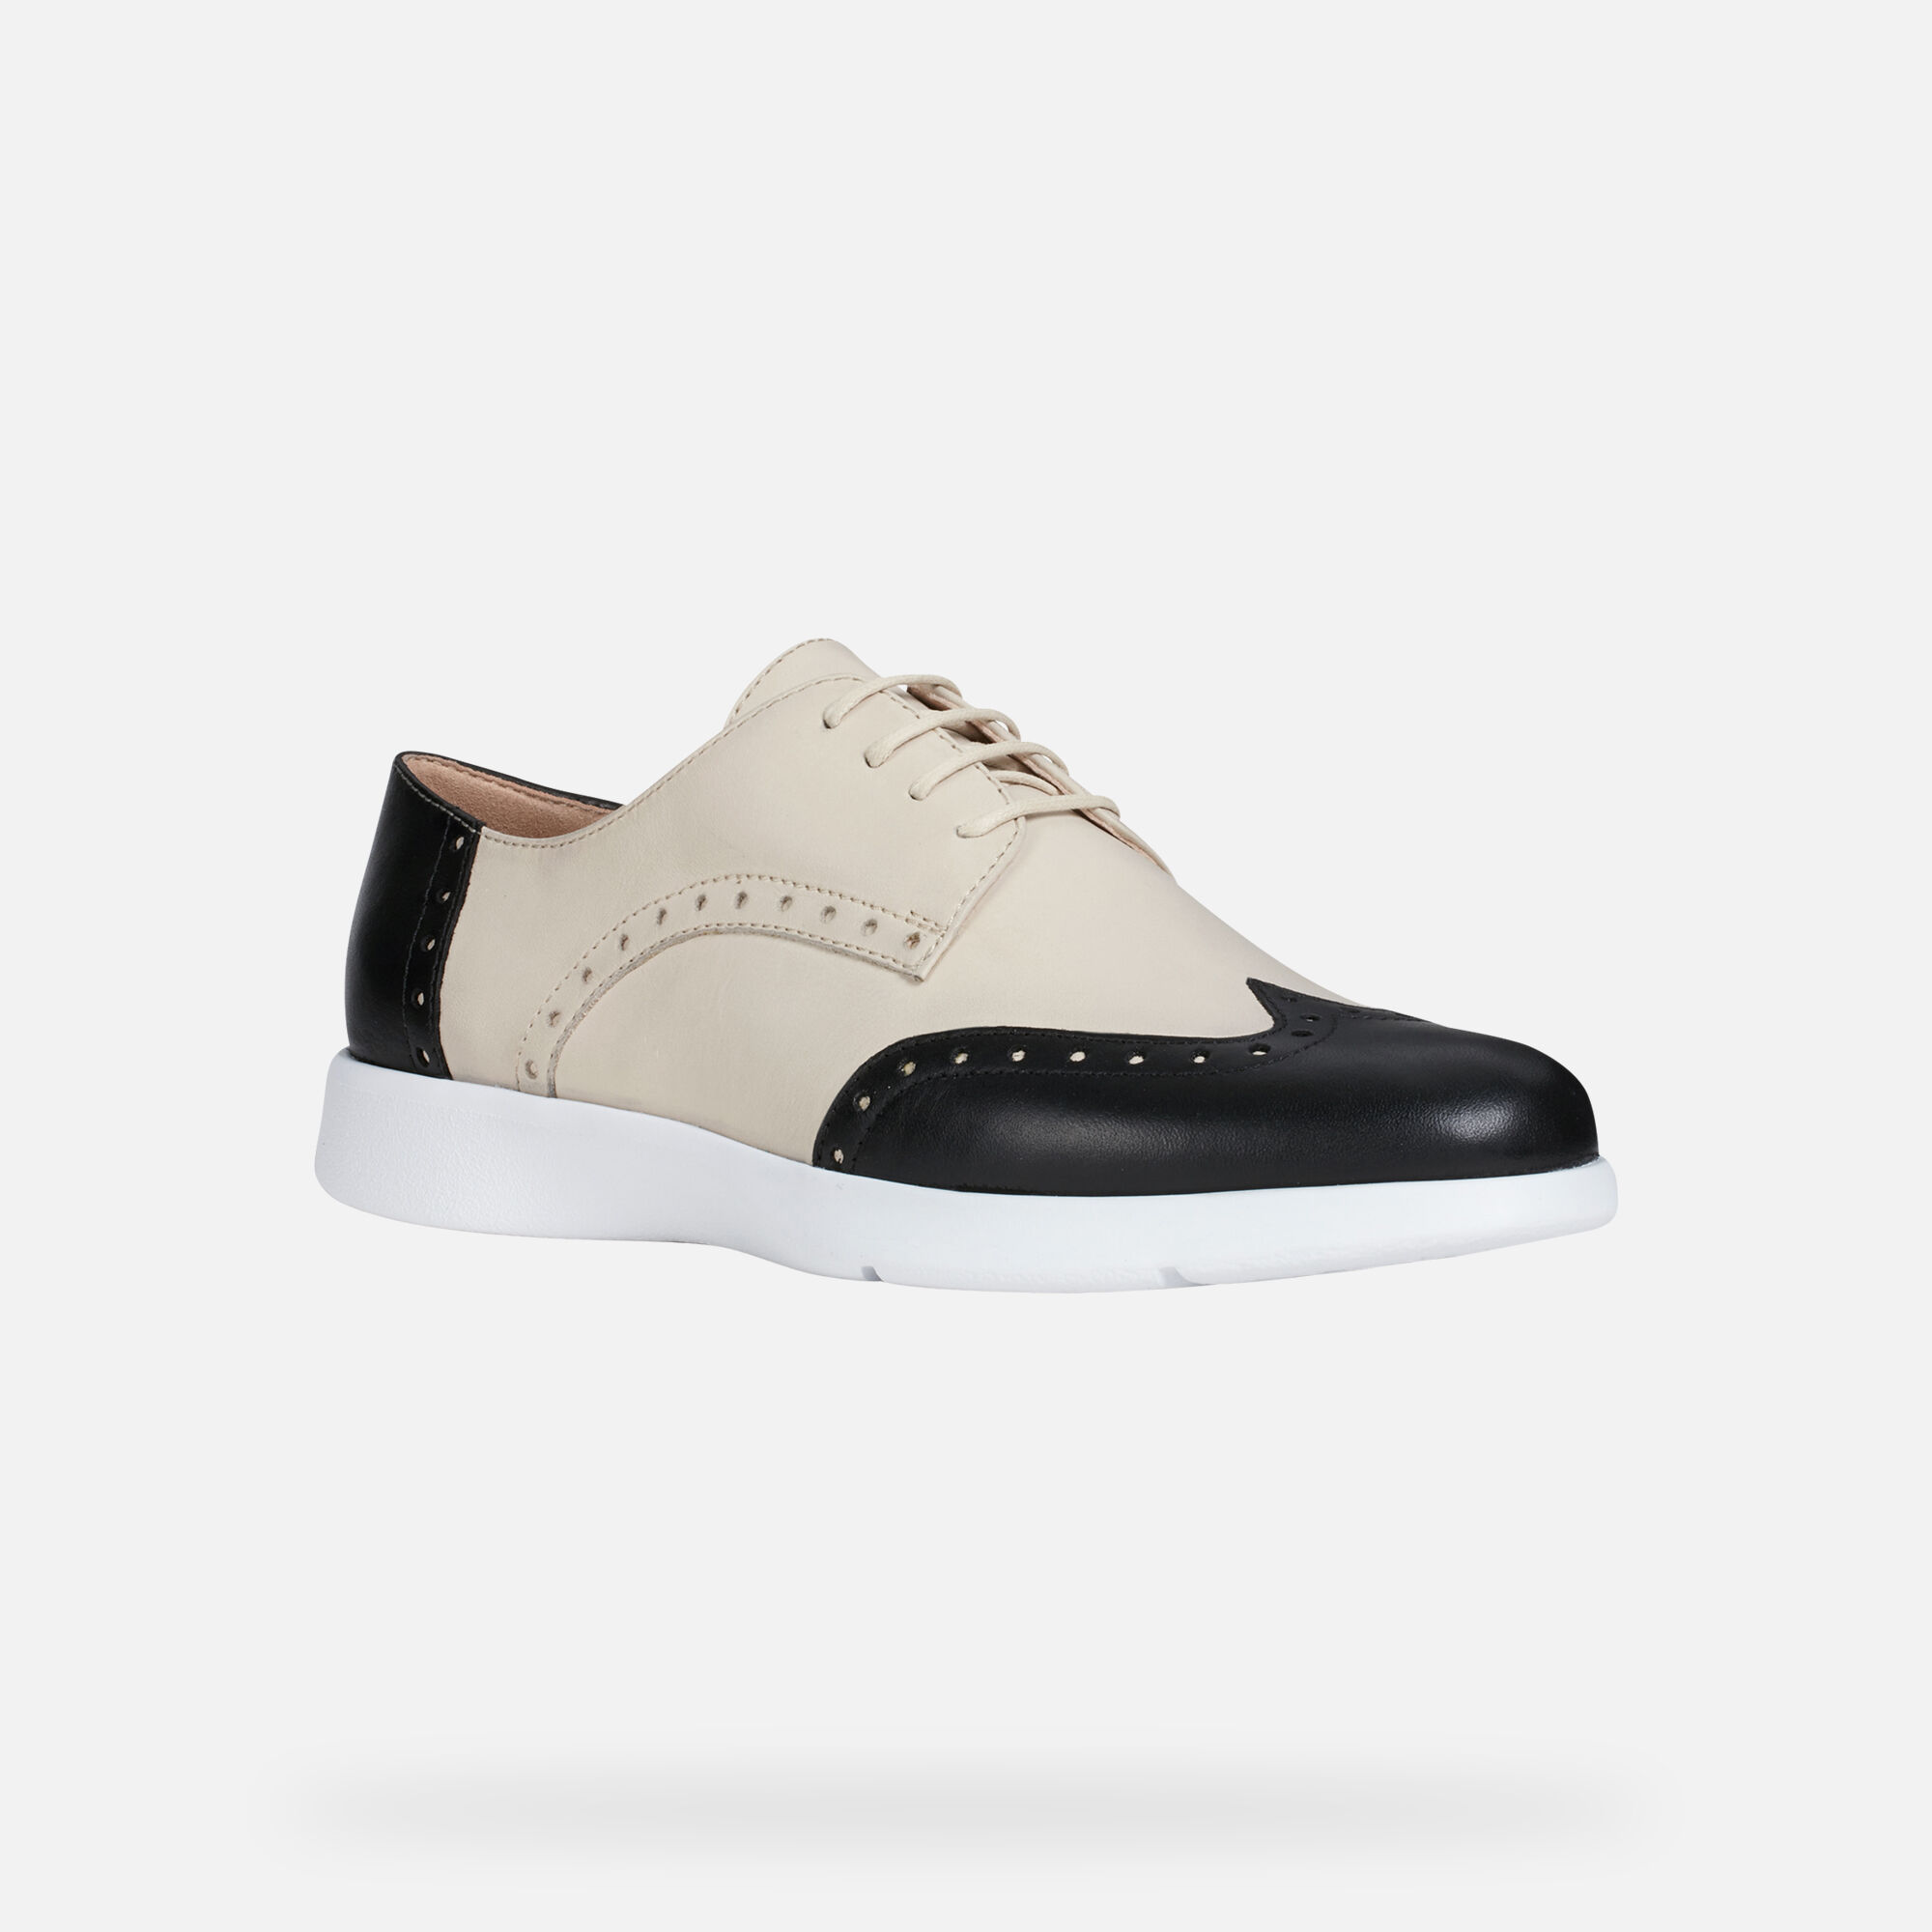 Geox D ARJOLA: Cream and Black Woman Shoes | Geox SS19